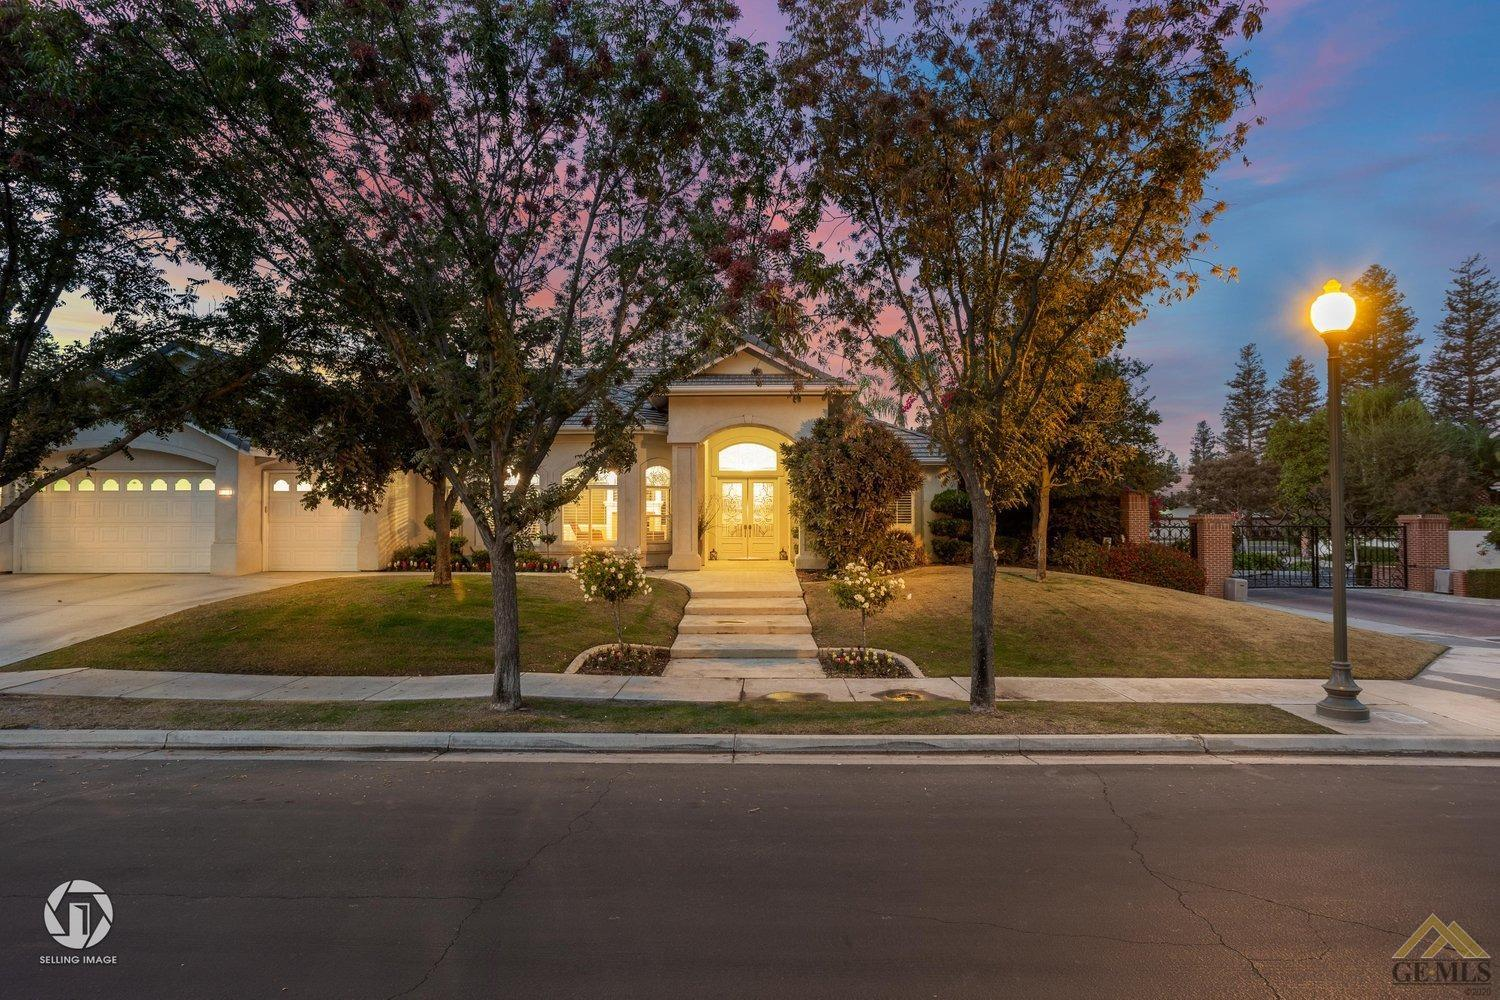 Photo of 11102 Hilaire Blaise Drive, Bakersfield, CA 93311